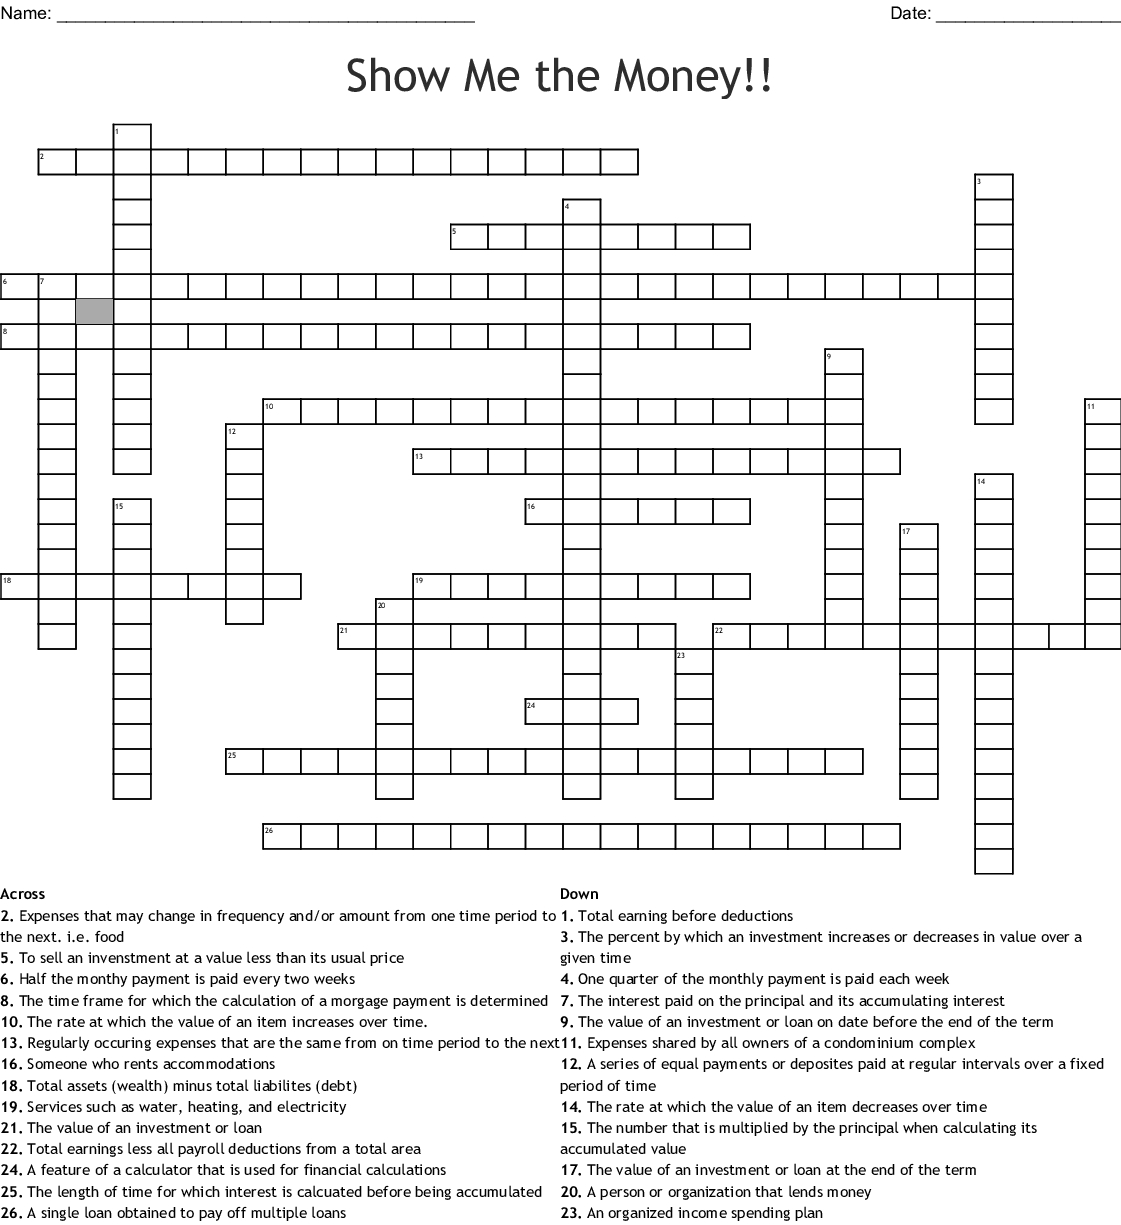 Show Me The Money!! Crossword - Wordmint - Printable Crossword Puzzle Money